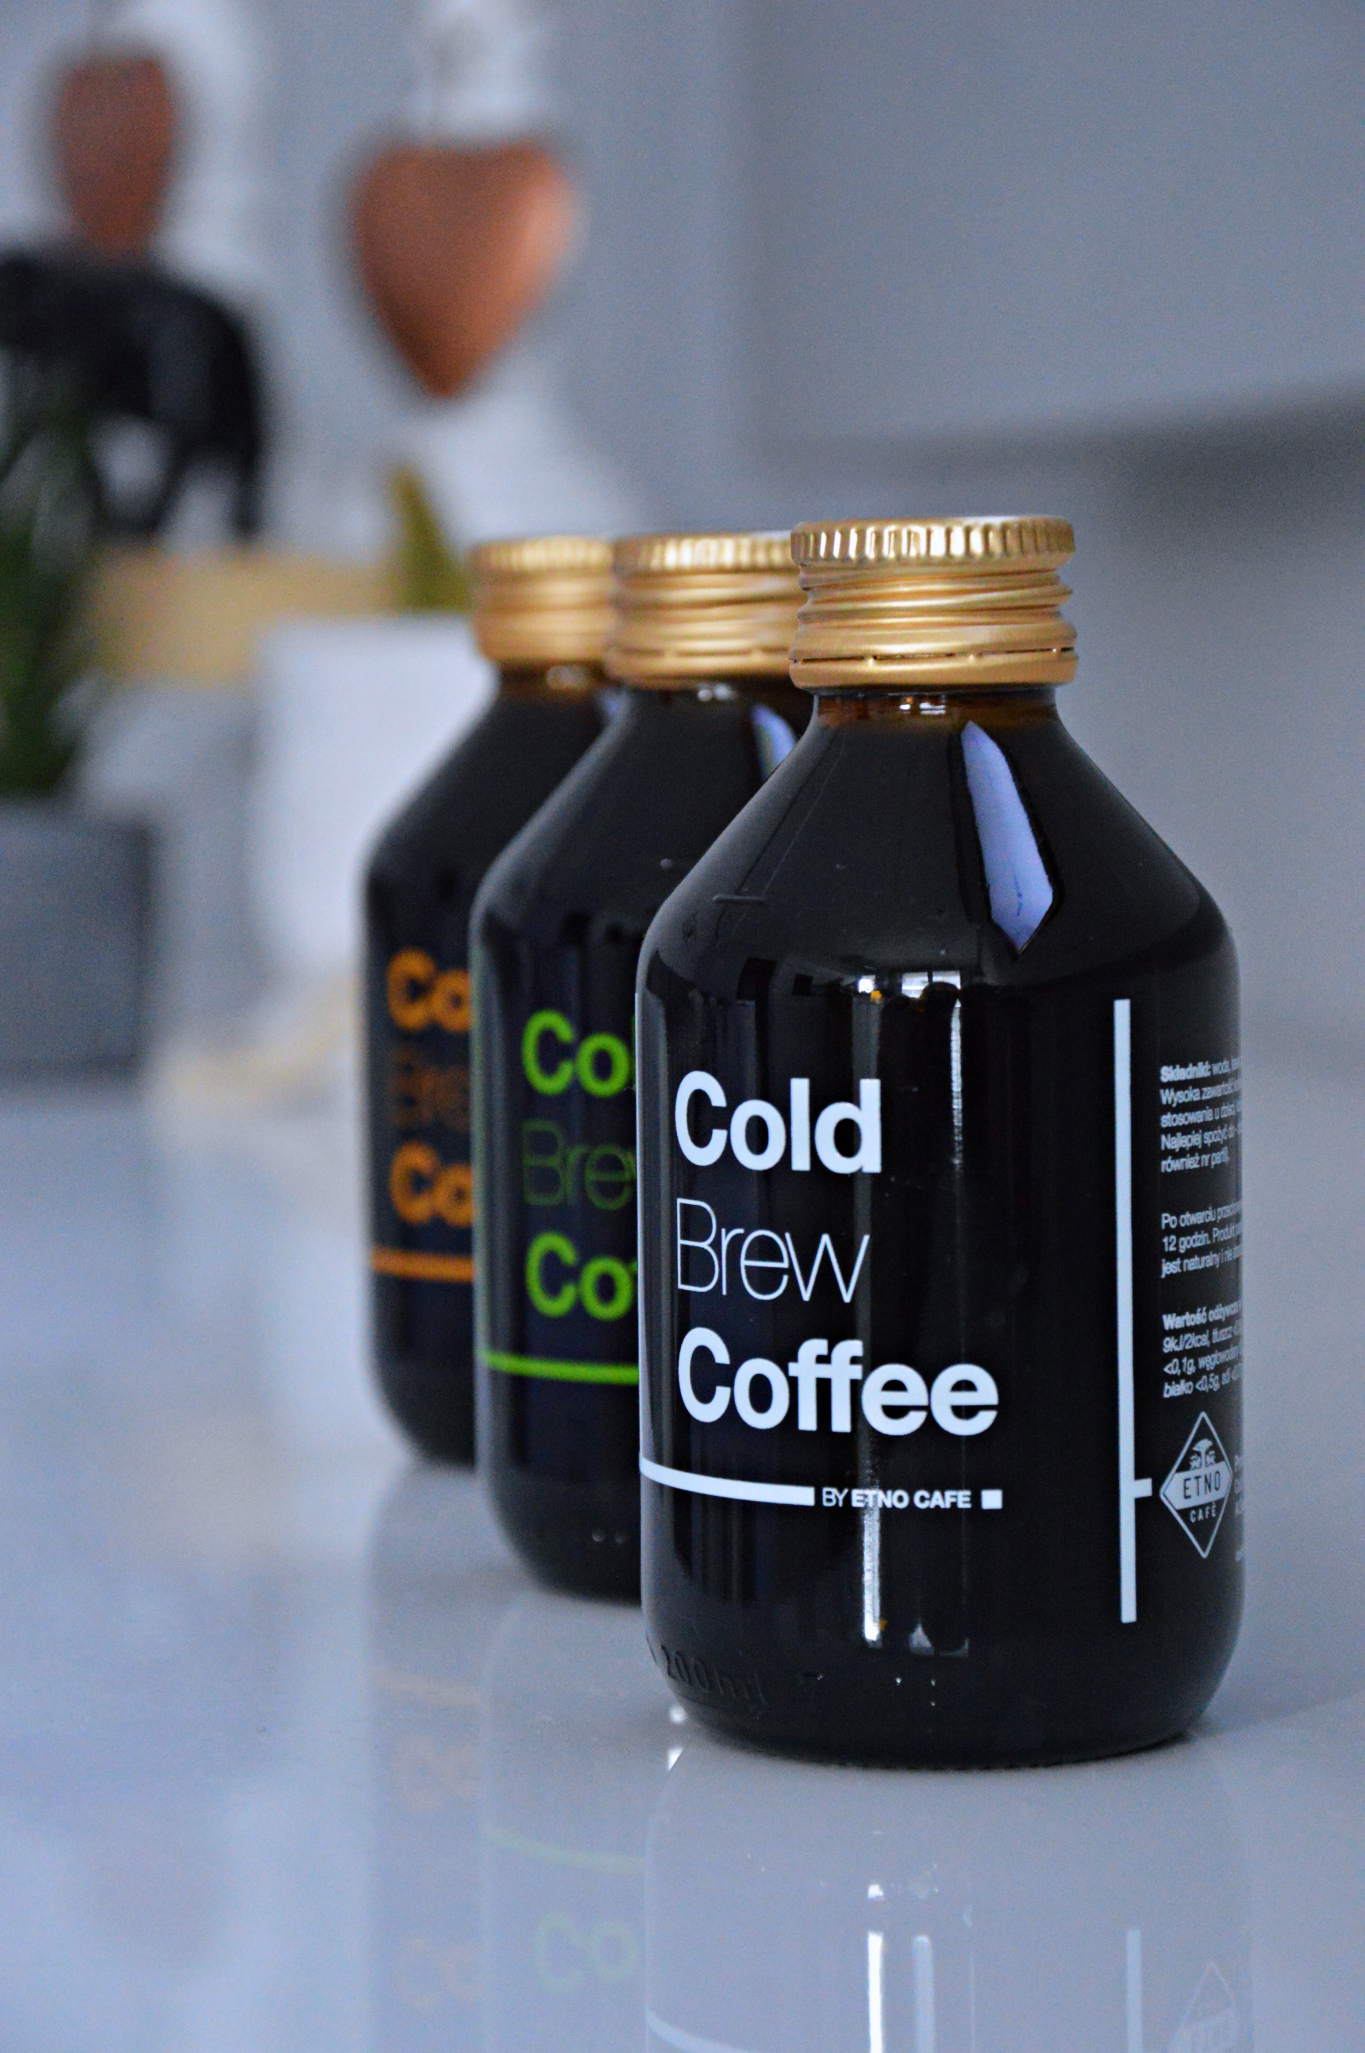 Cold Brew Coffee Etno Cafe